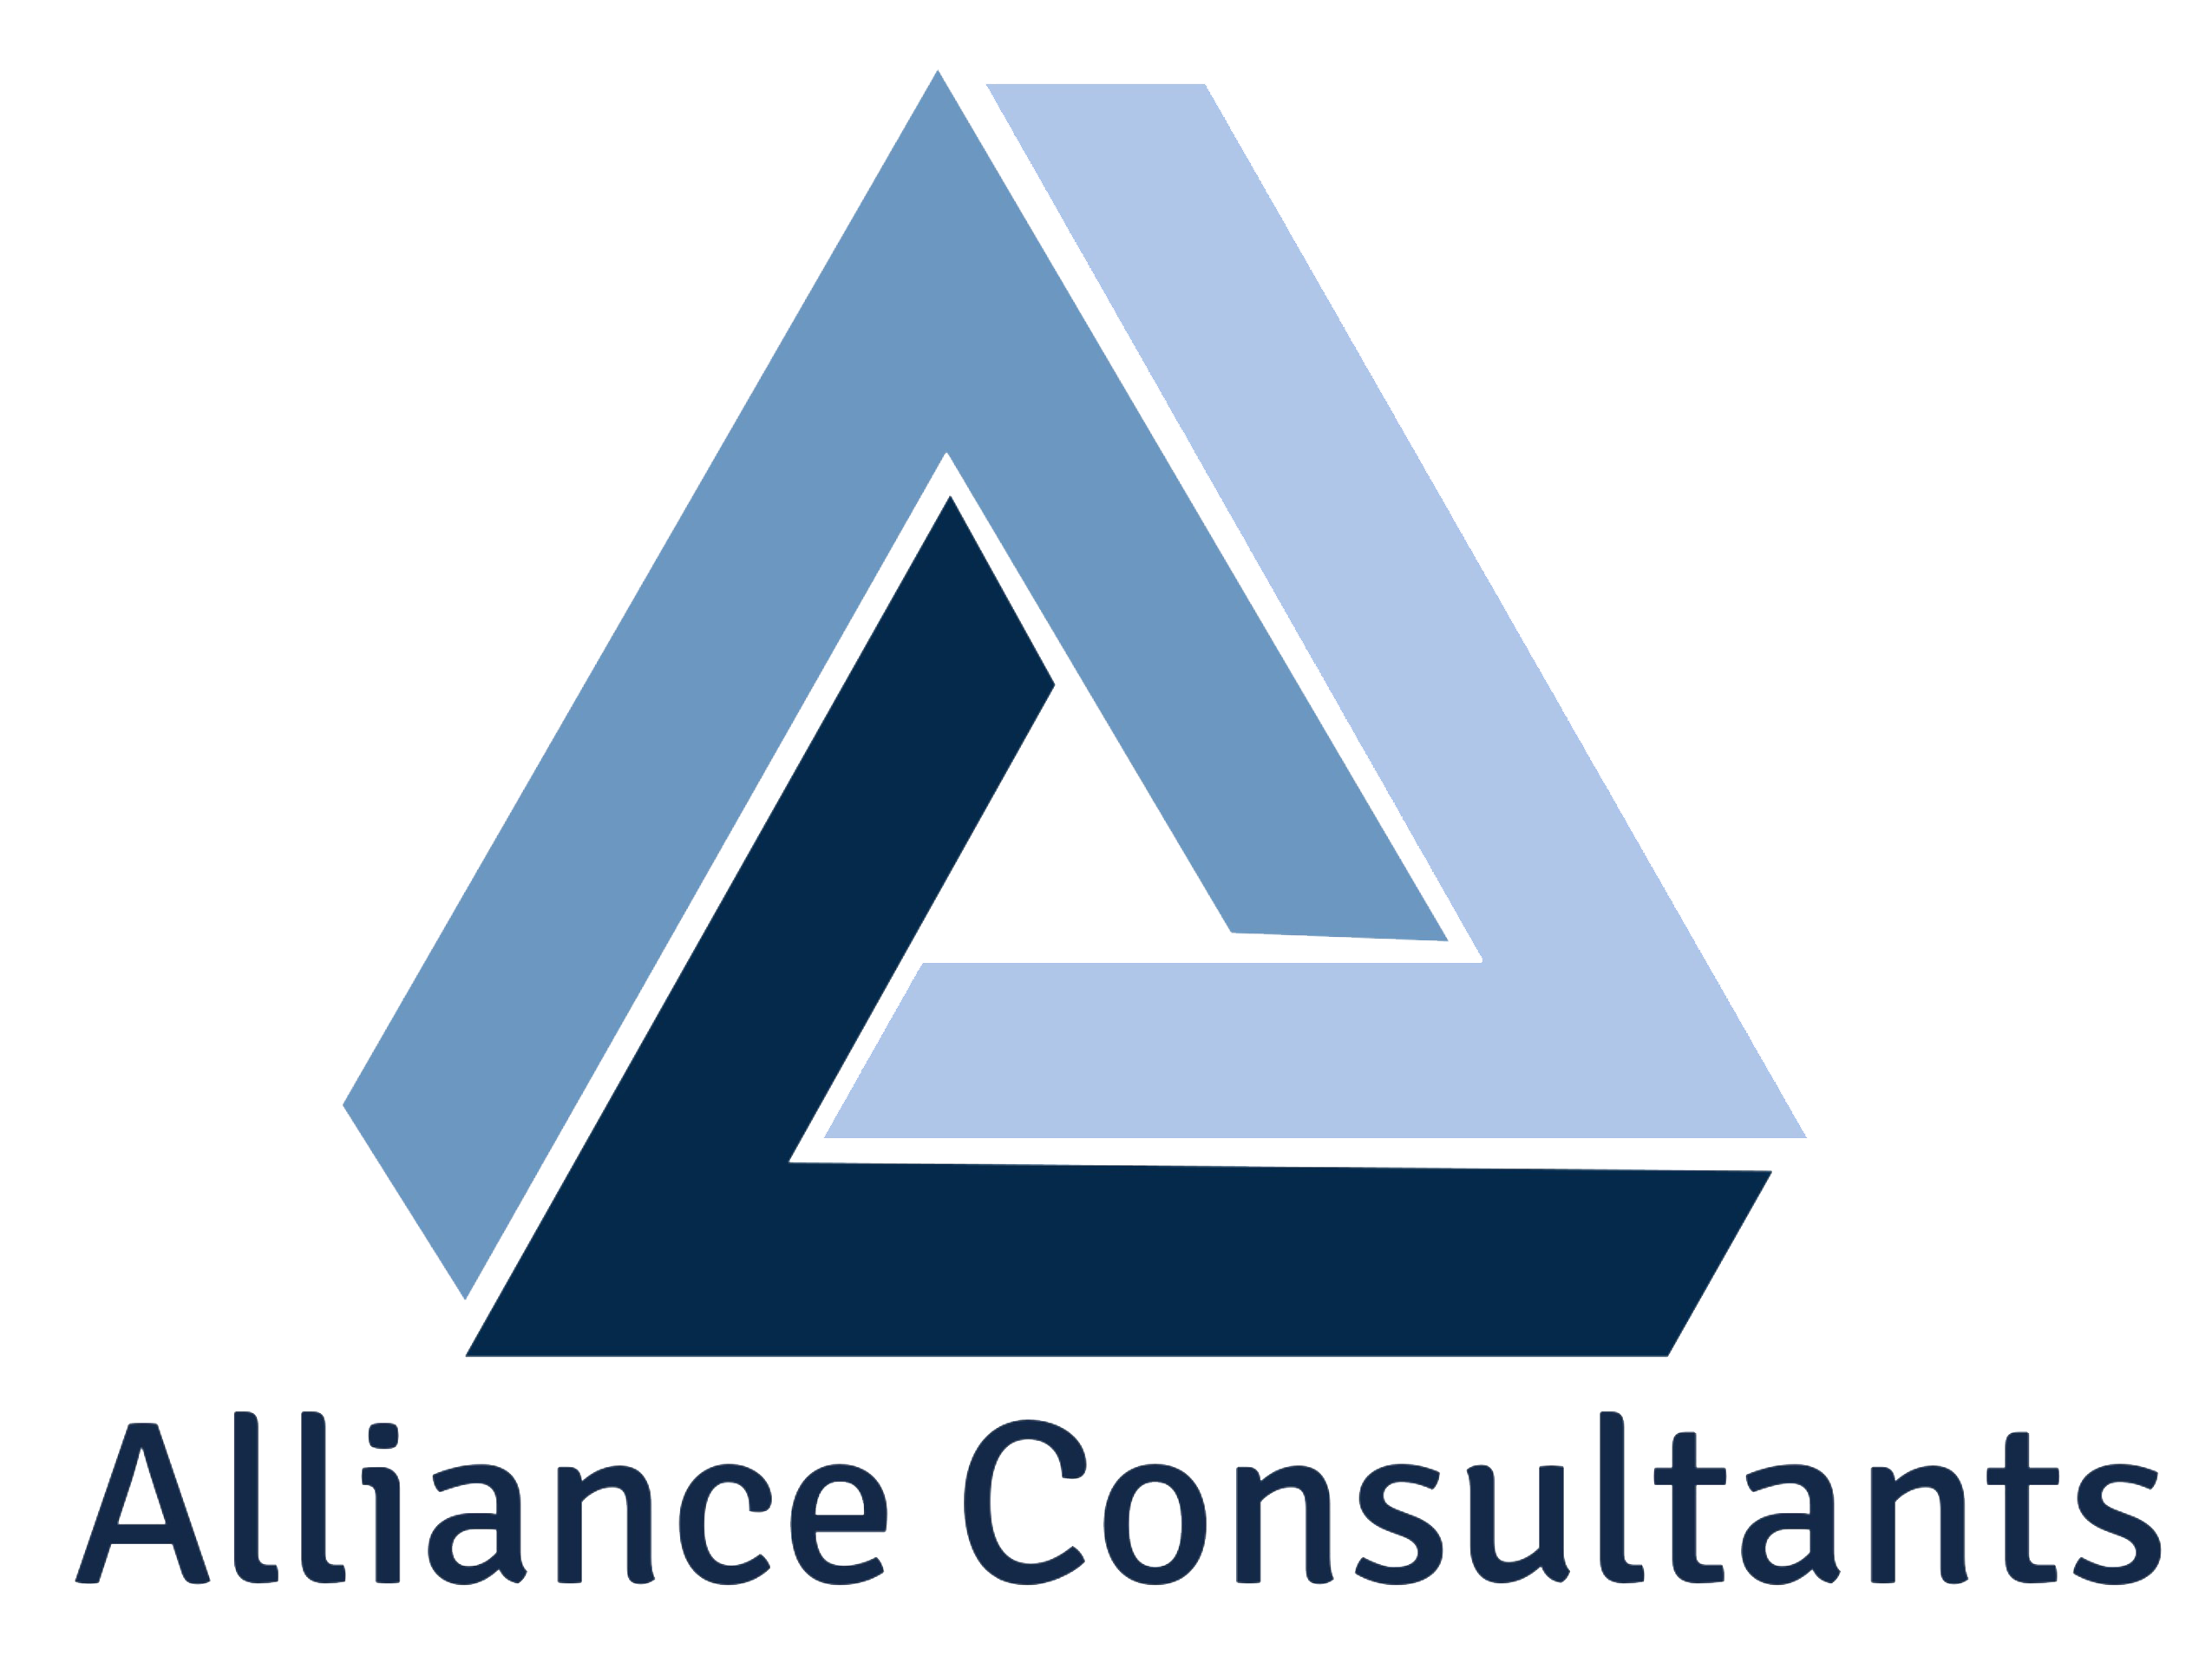 Alliance Consultants